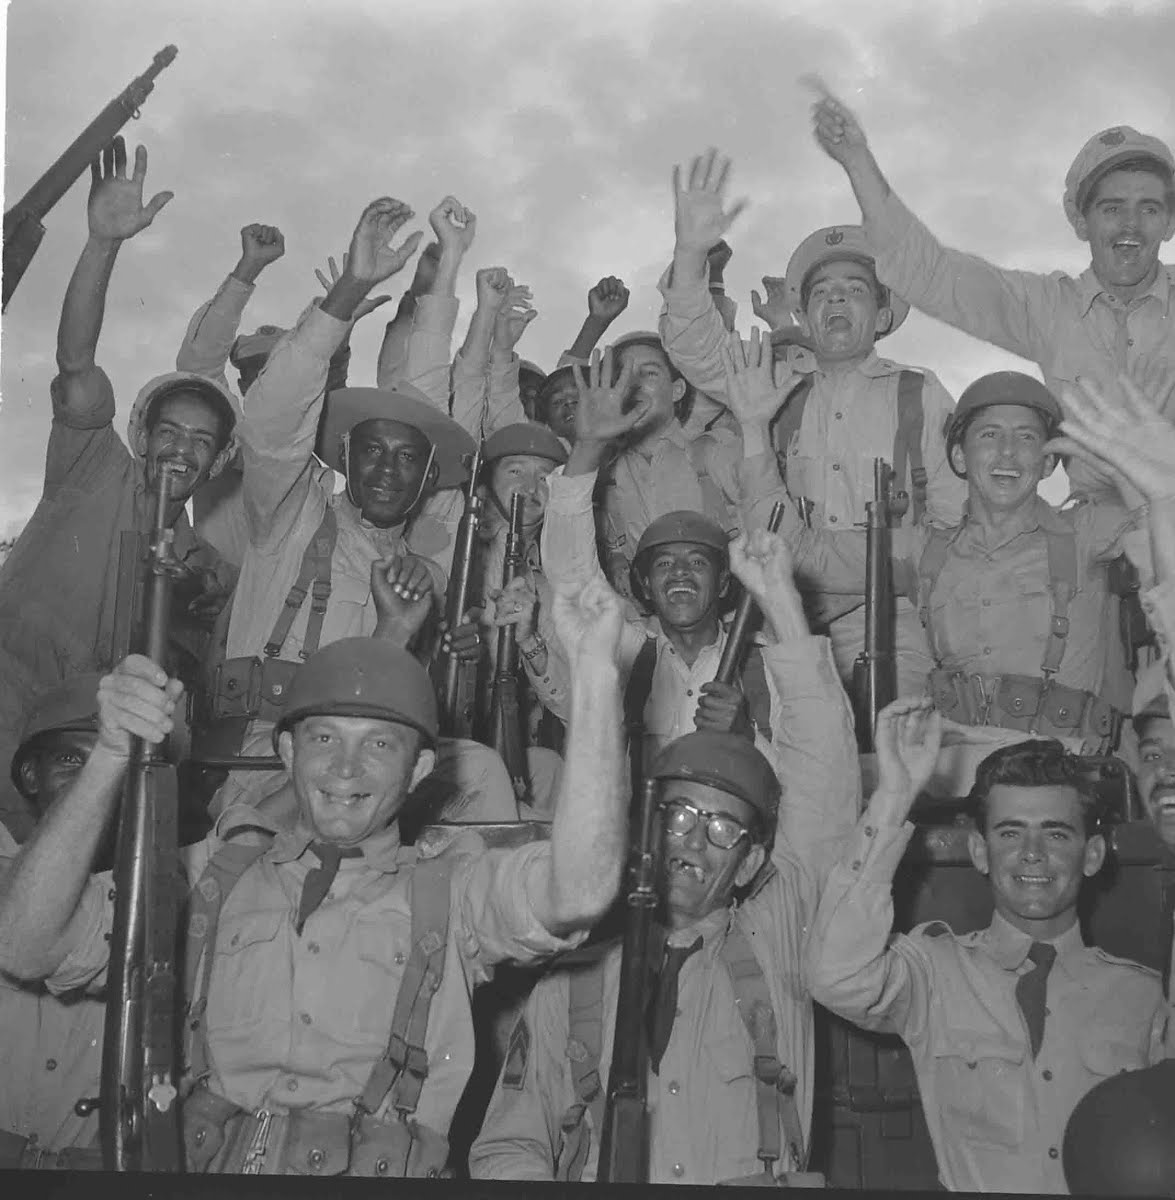 an analysis of cuban revolution in cuba The romantic image of the cuban revolution owes much to ernesto che guevara, who played up the role of fidel castro's rural guerrilla fighters in toppling cuban.